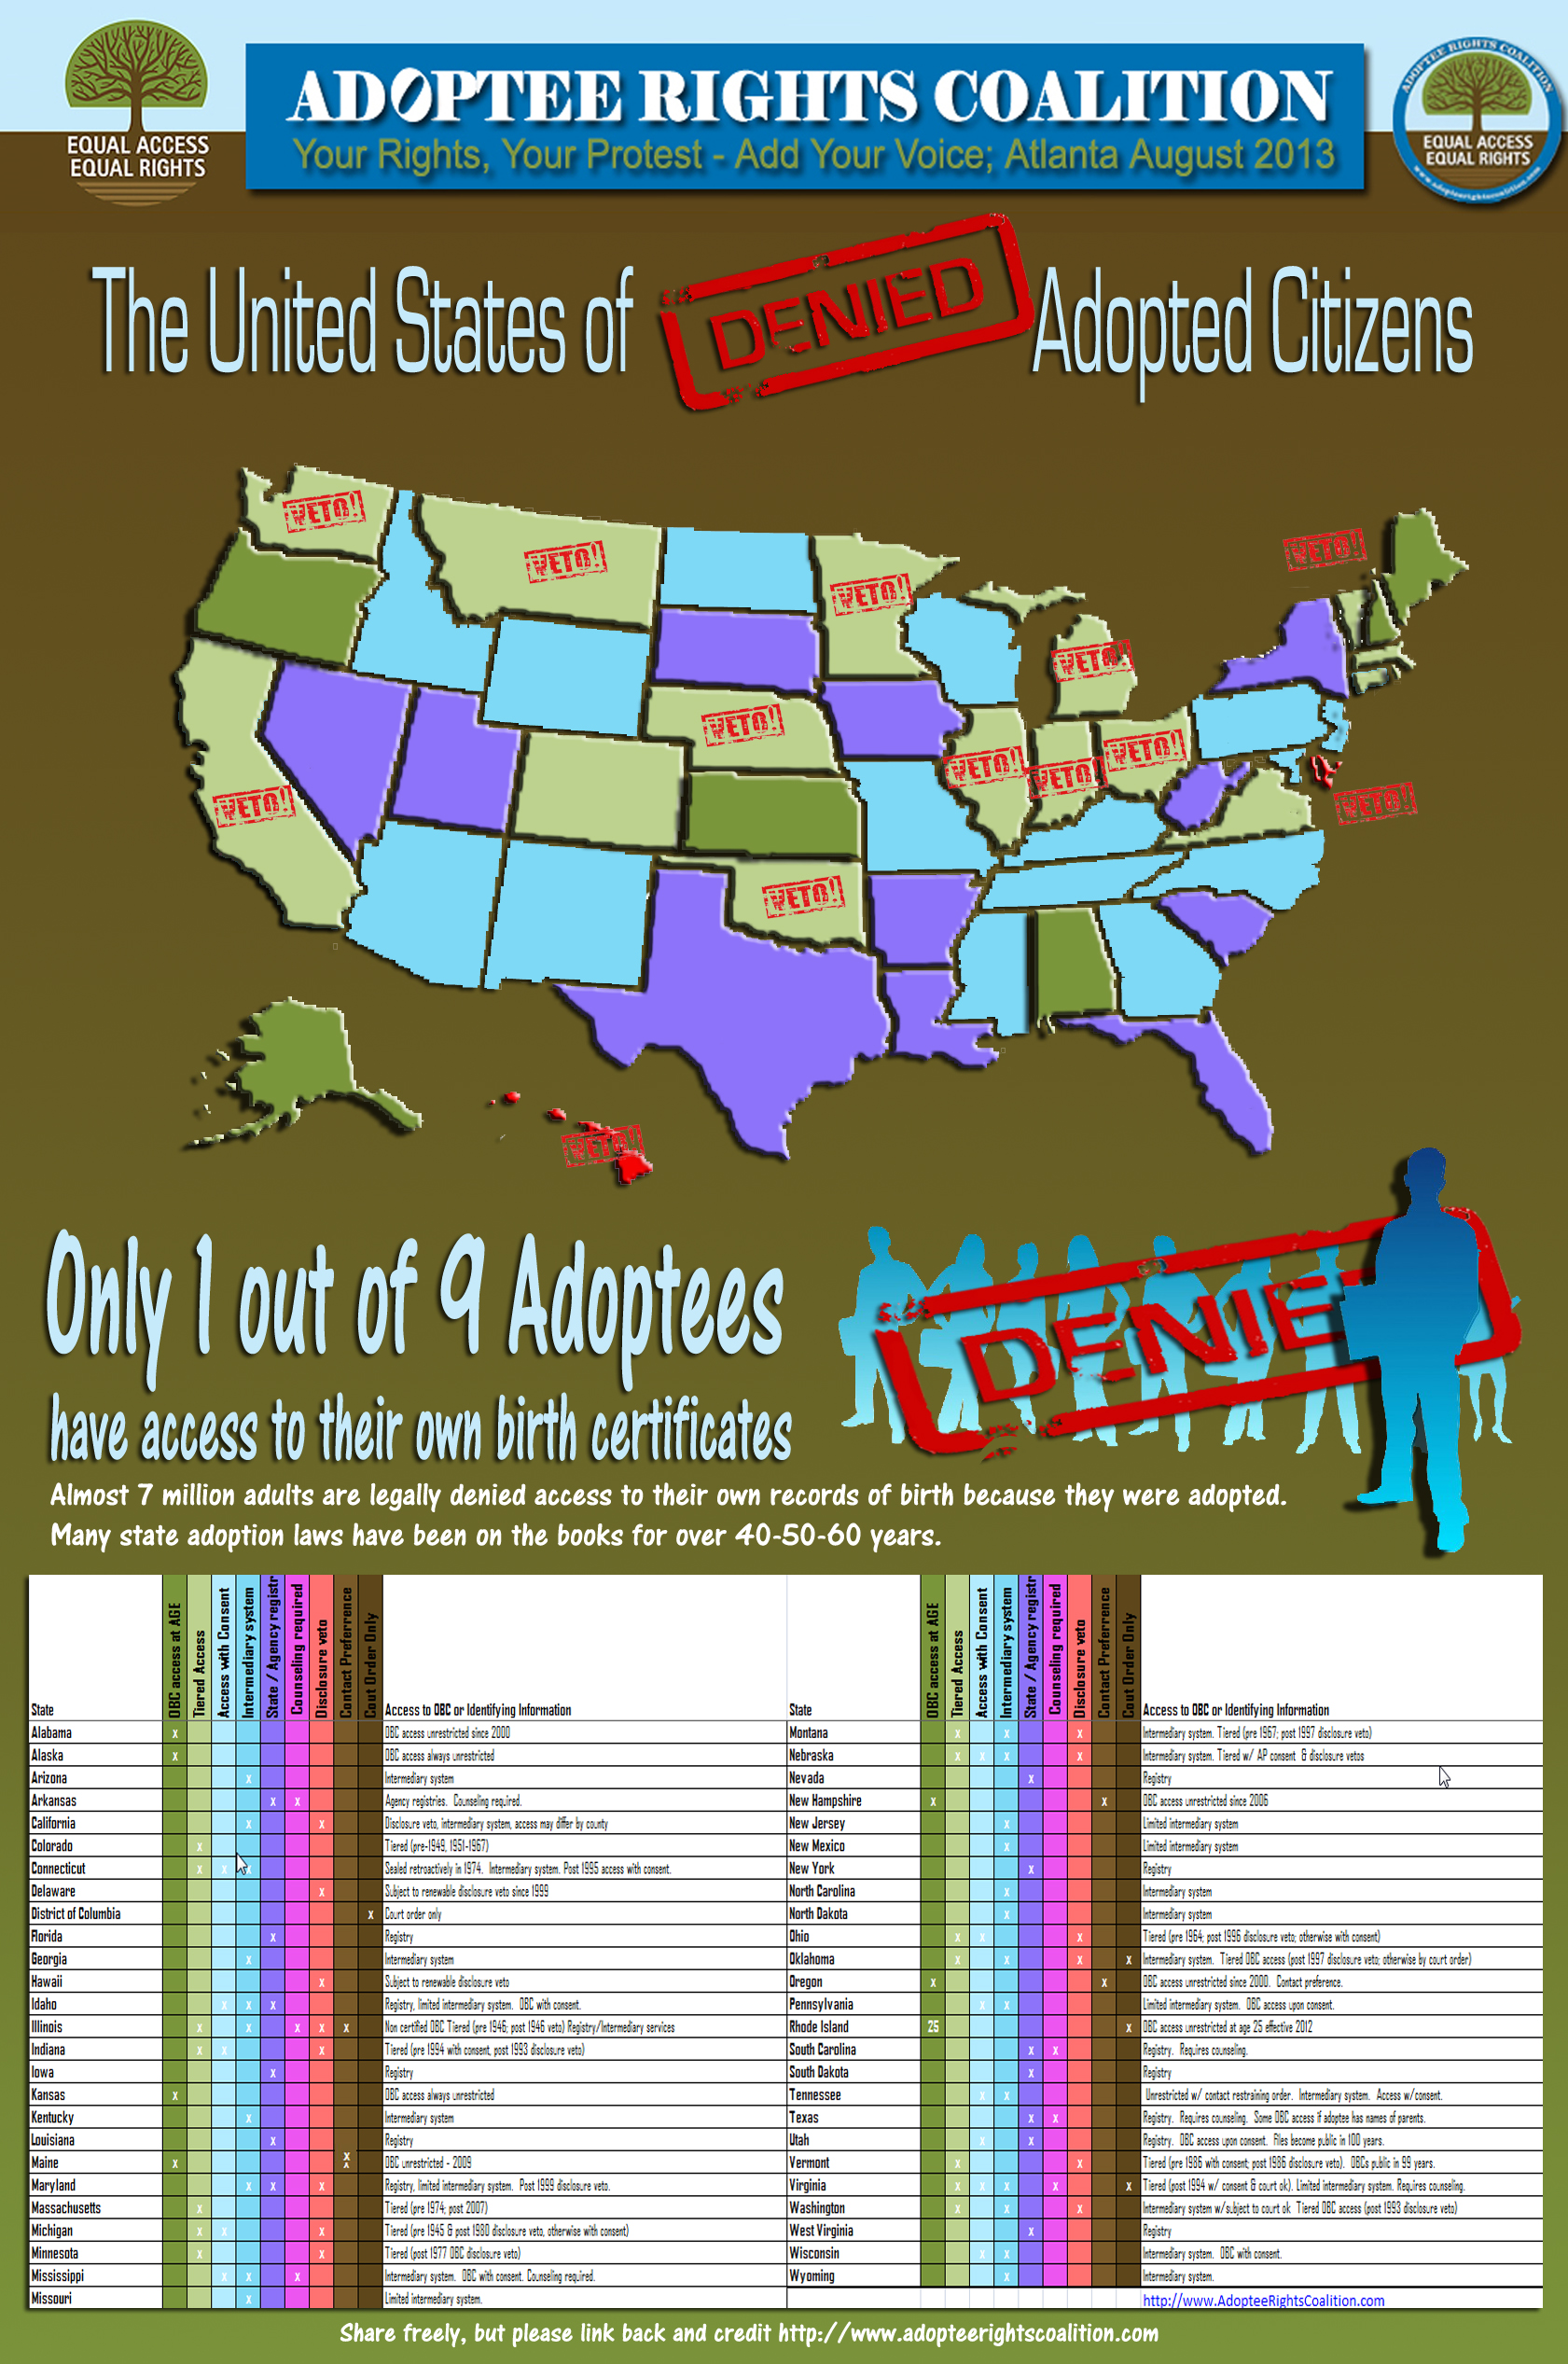 The-United-States-of-denied-adoption-infographic